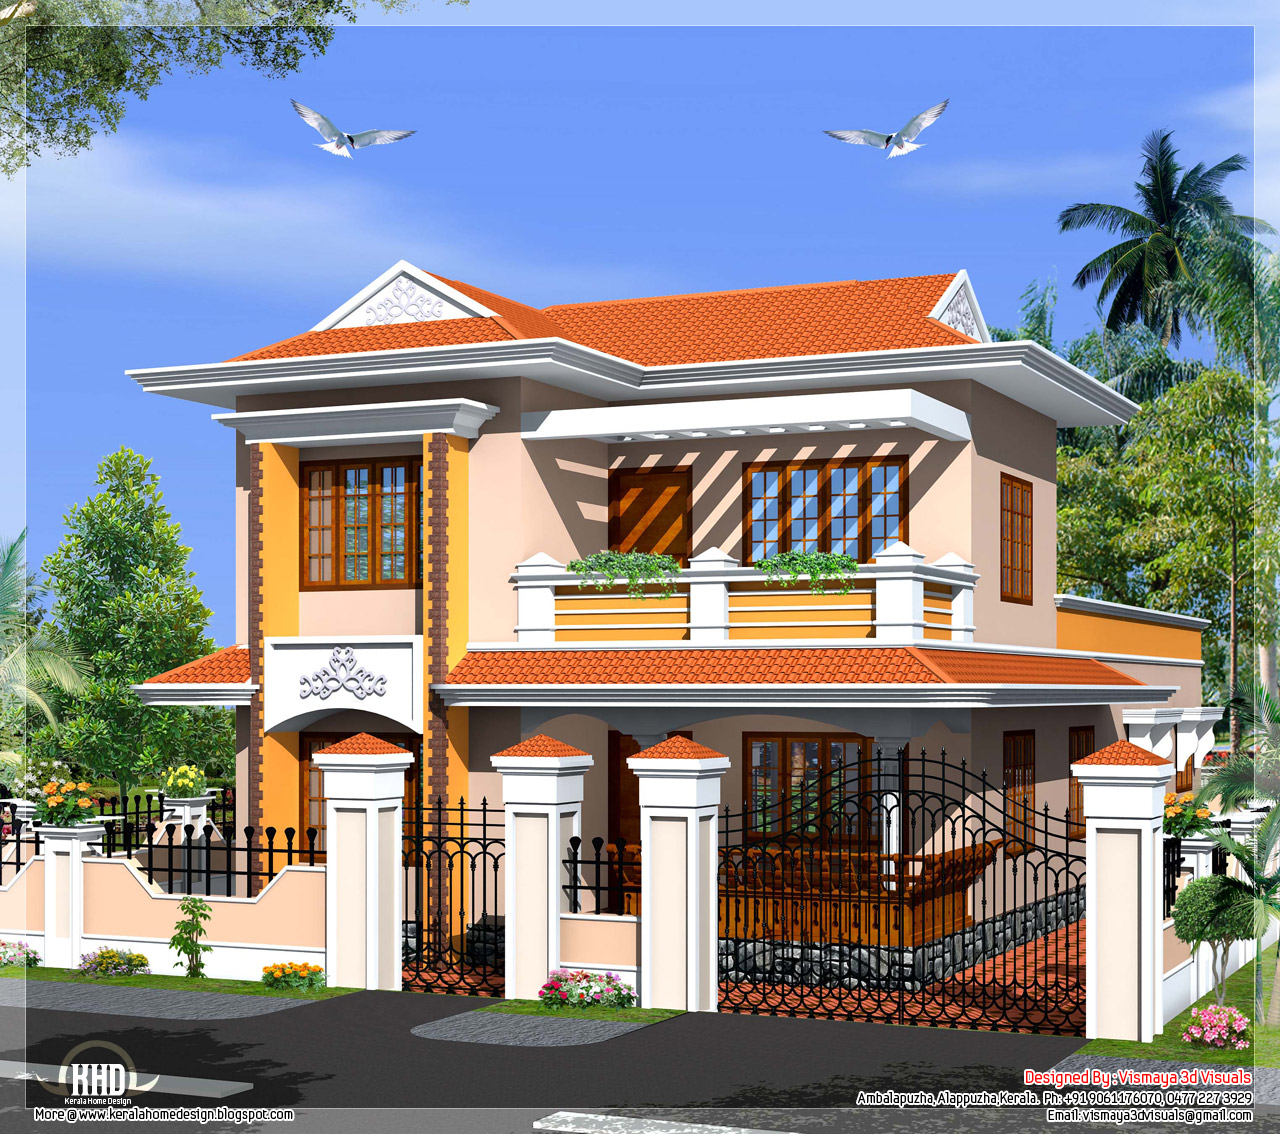 Kerala Model Villa In 2110 In Square Feet Kerala House